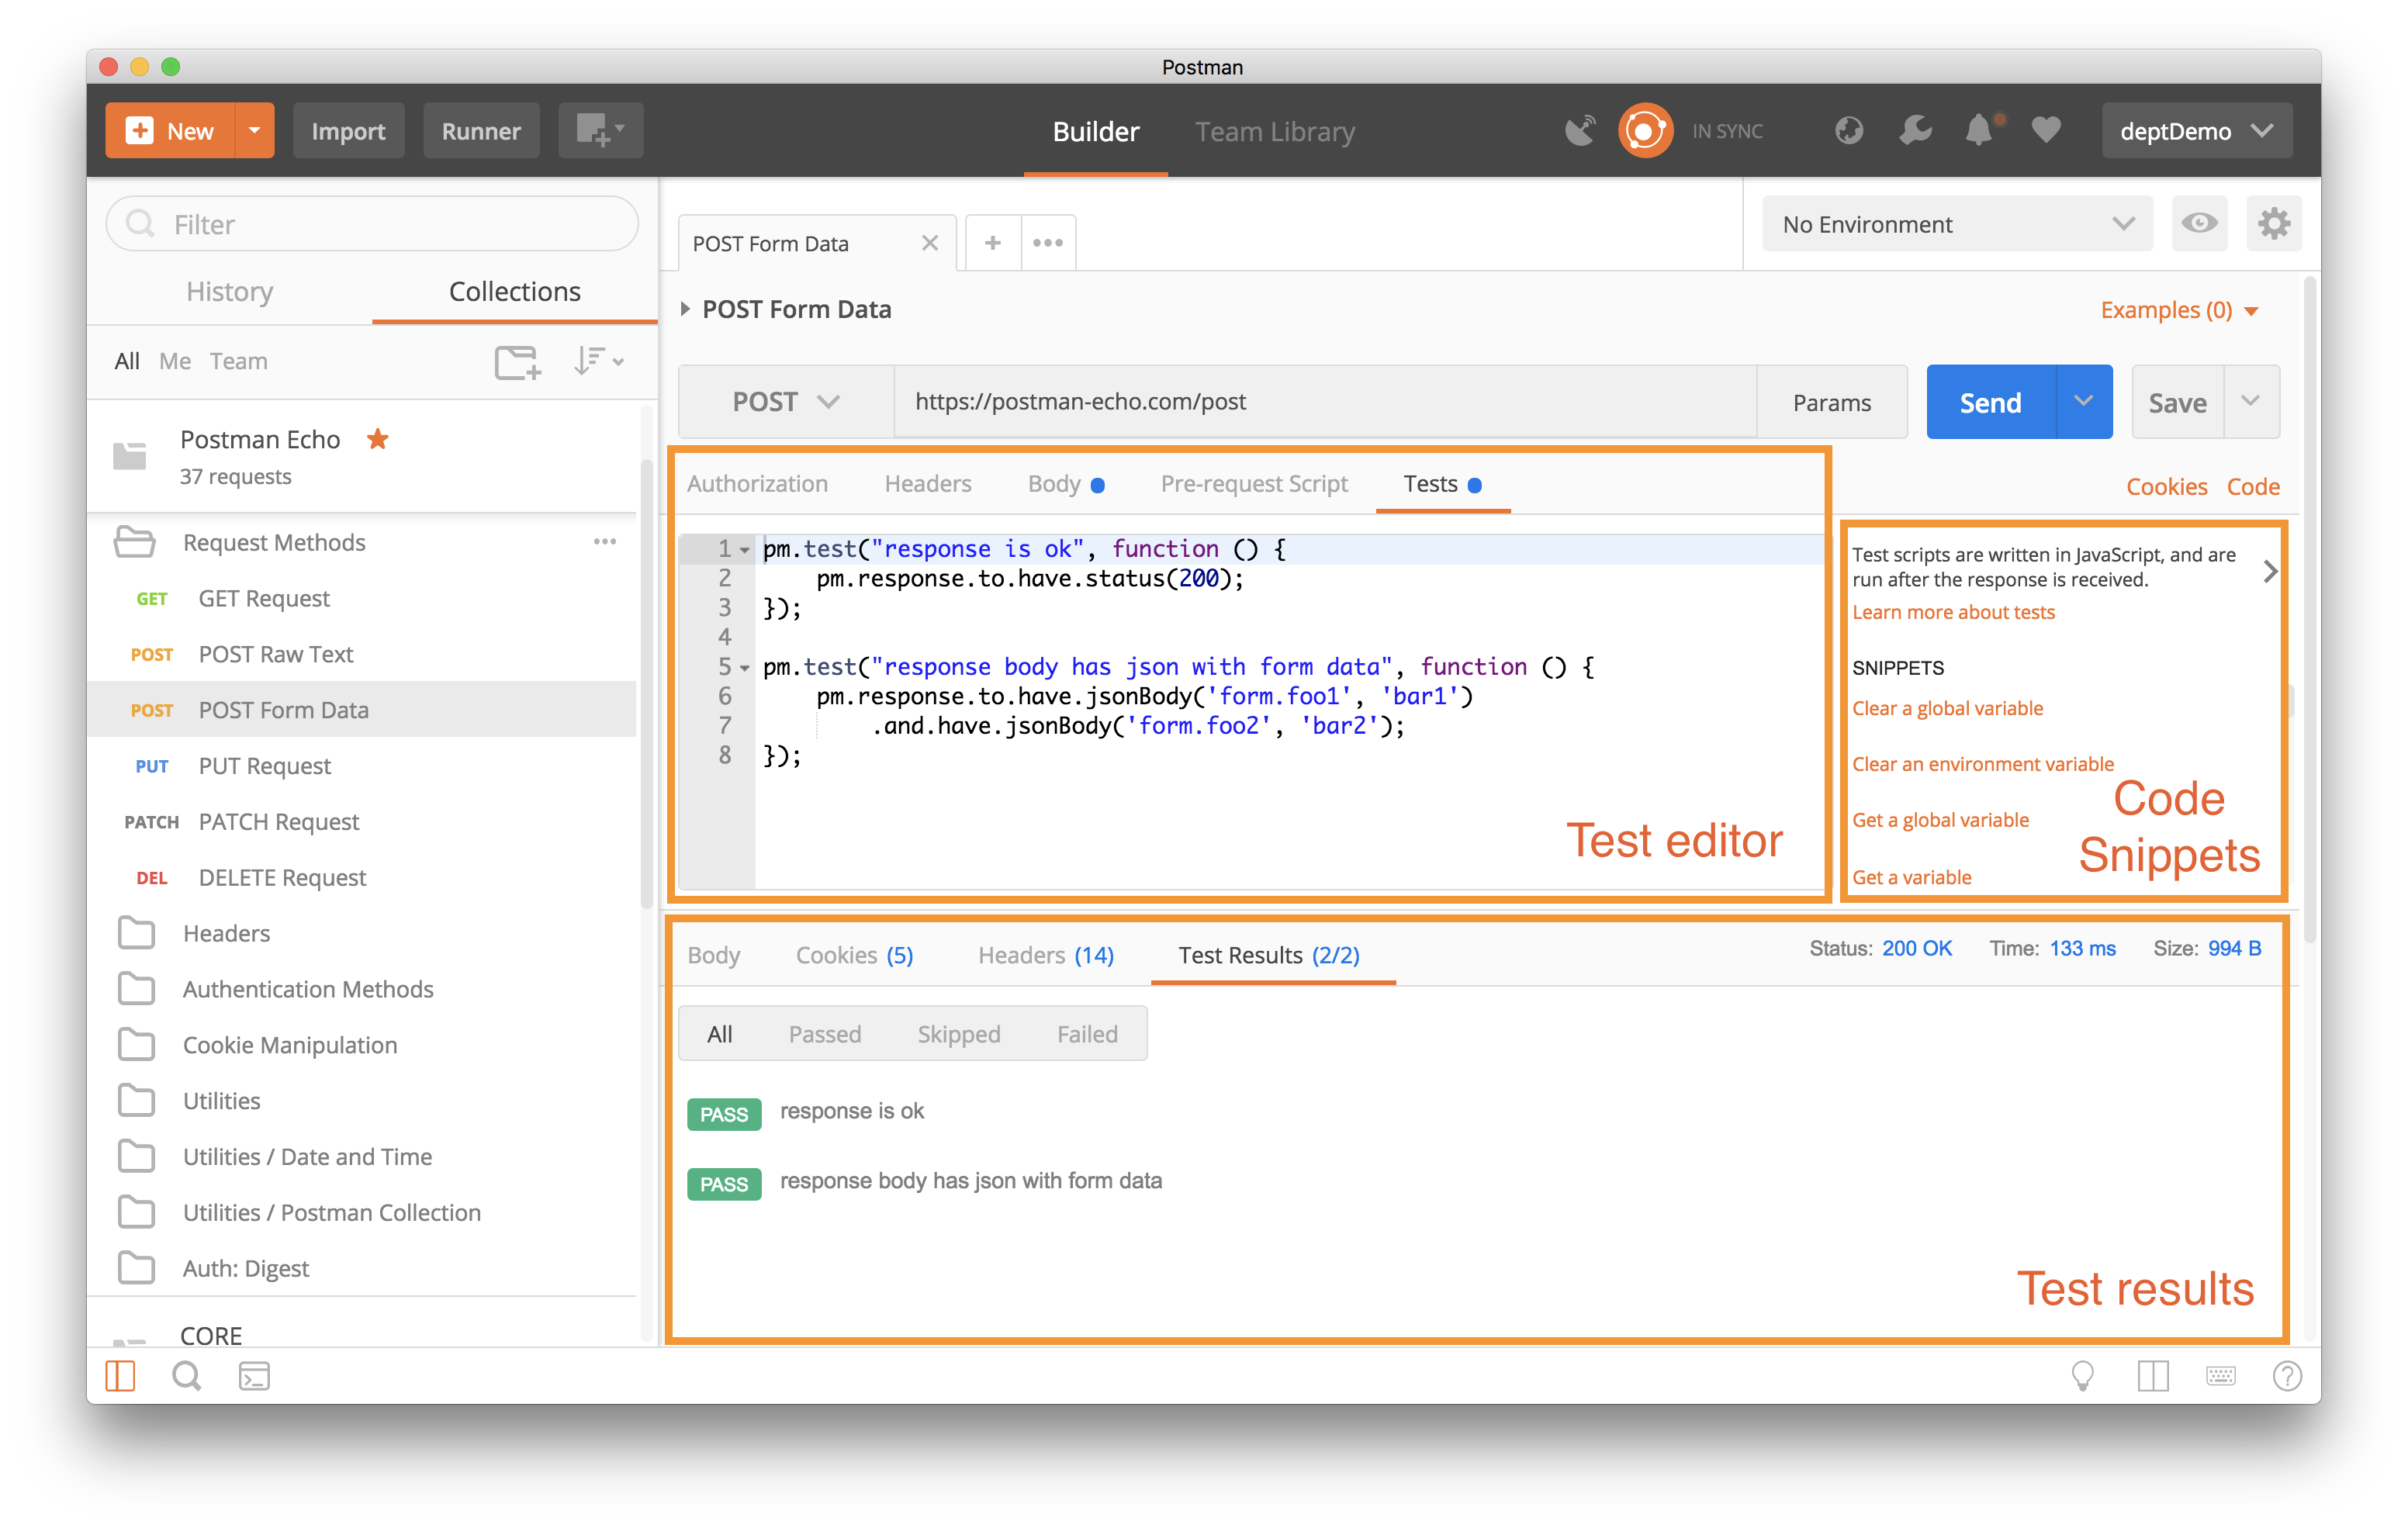 The ultimate guide to create test cases for postman for API